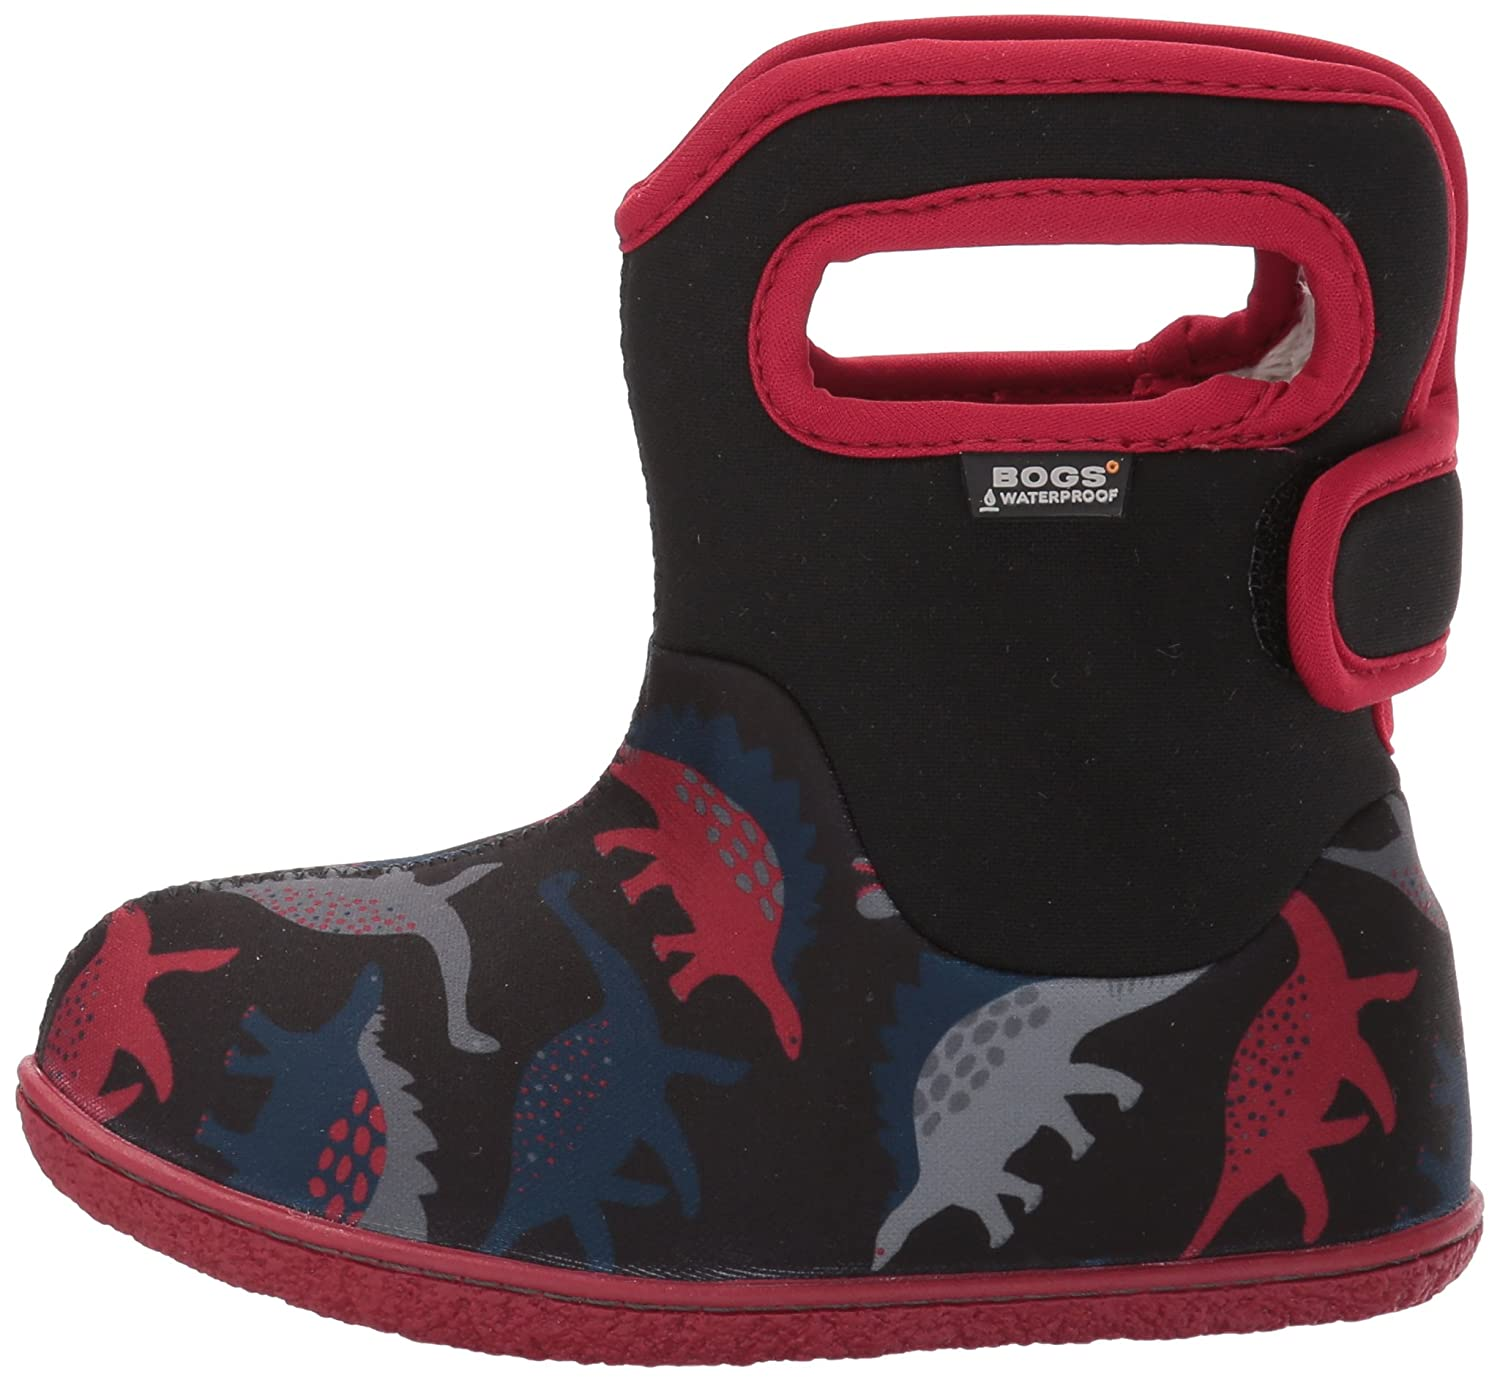 Bogs Kid's Baby Dino Boot, Black/Multi, 8 M US Toddler Bogs Kid's Baby Dino Boot 72165I-009